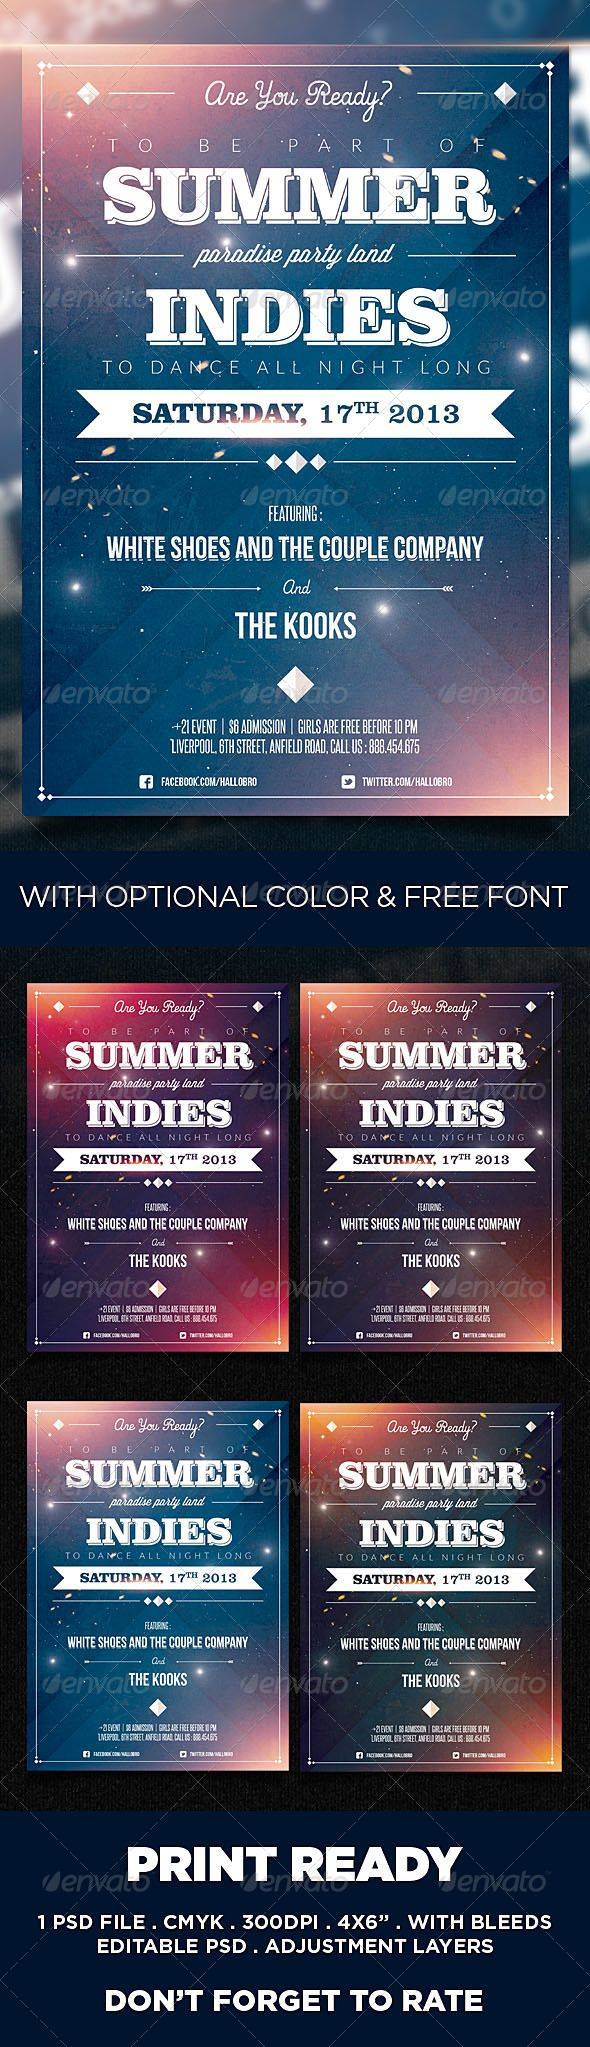 Summer Indies Party Poster Template  #GraphicRiver